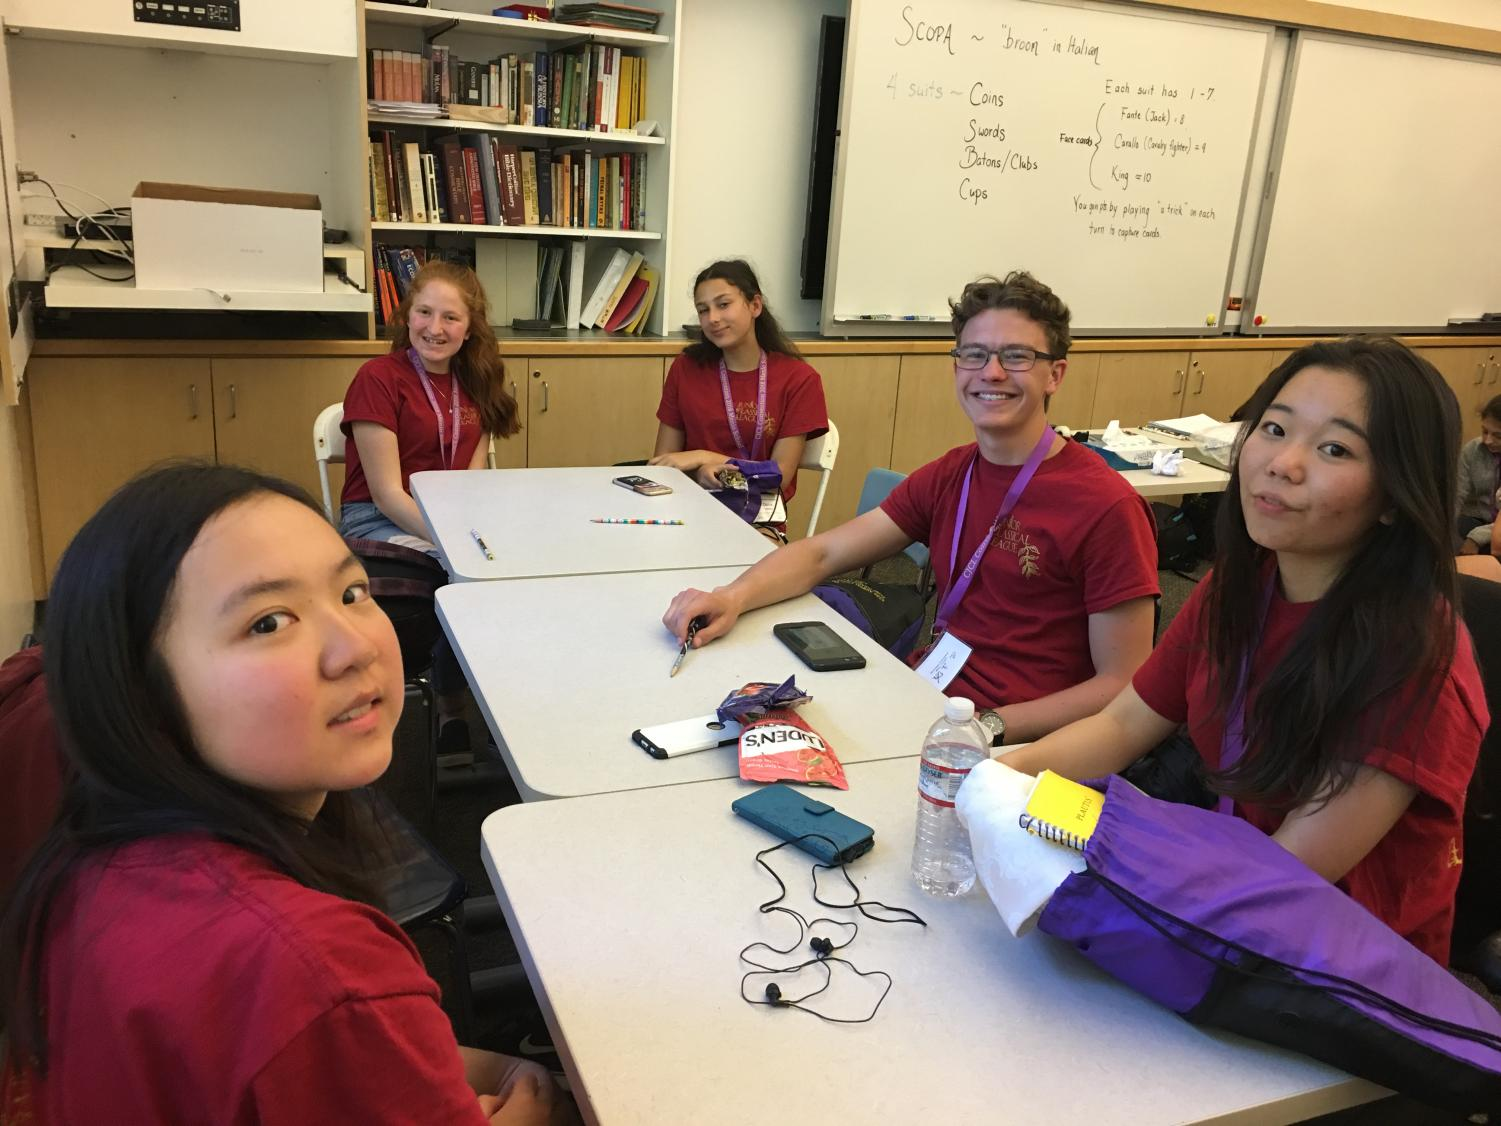 Junior Classical League (JCL) members prepare to participate in certamen, a Latin quiz game.